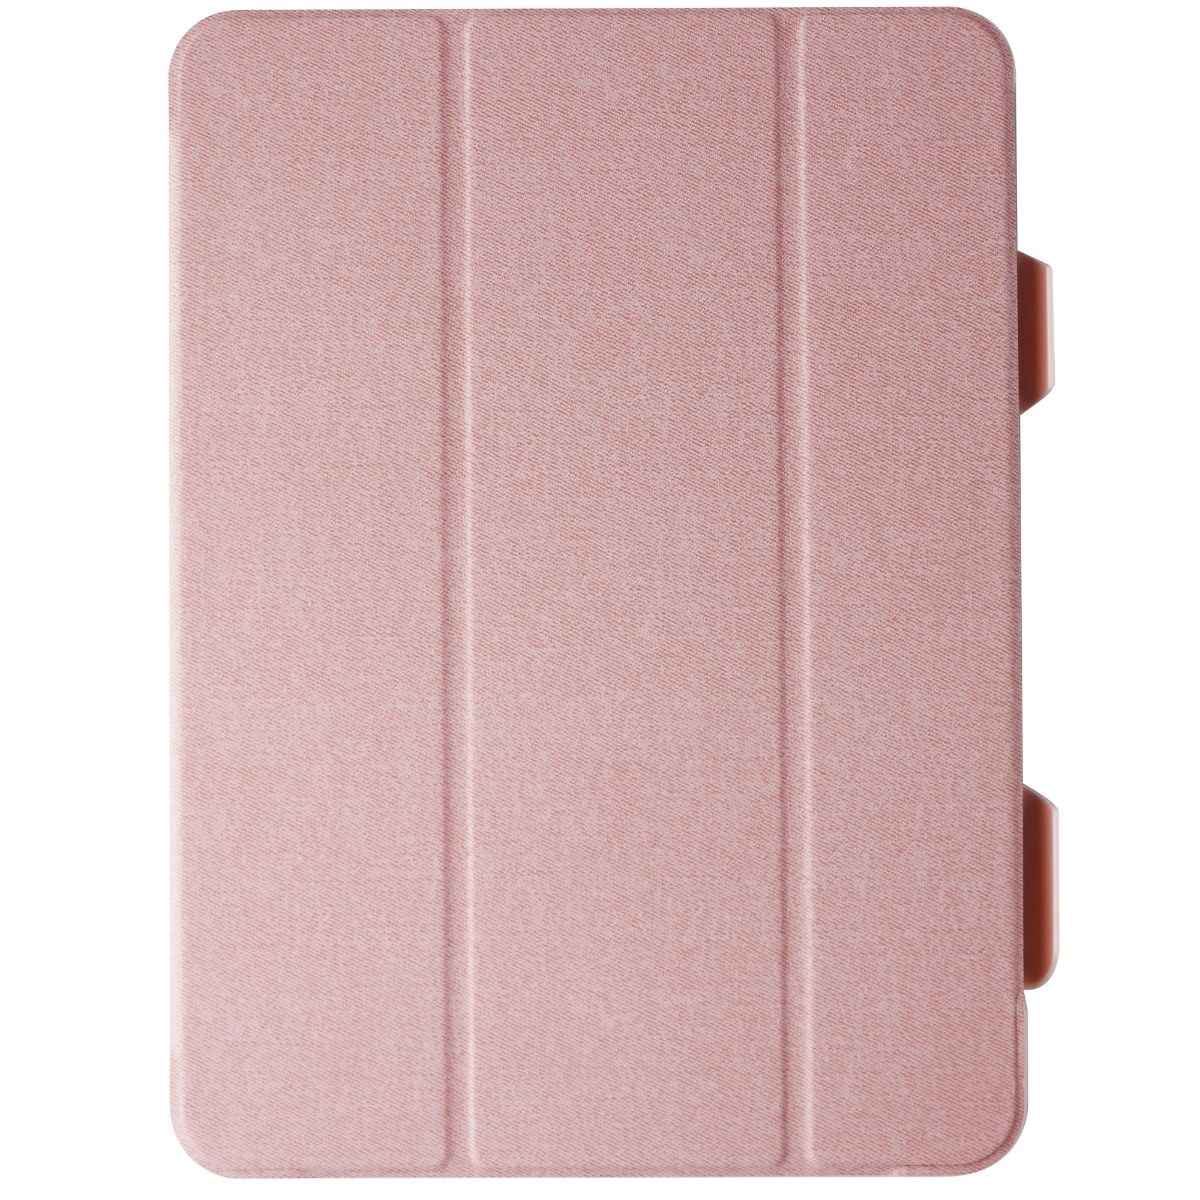 Verizon Hard Folio Case and Glass Screen Protector for iPad Pro 11-inch - Pink